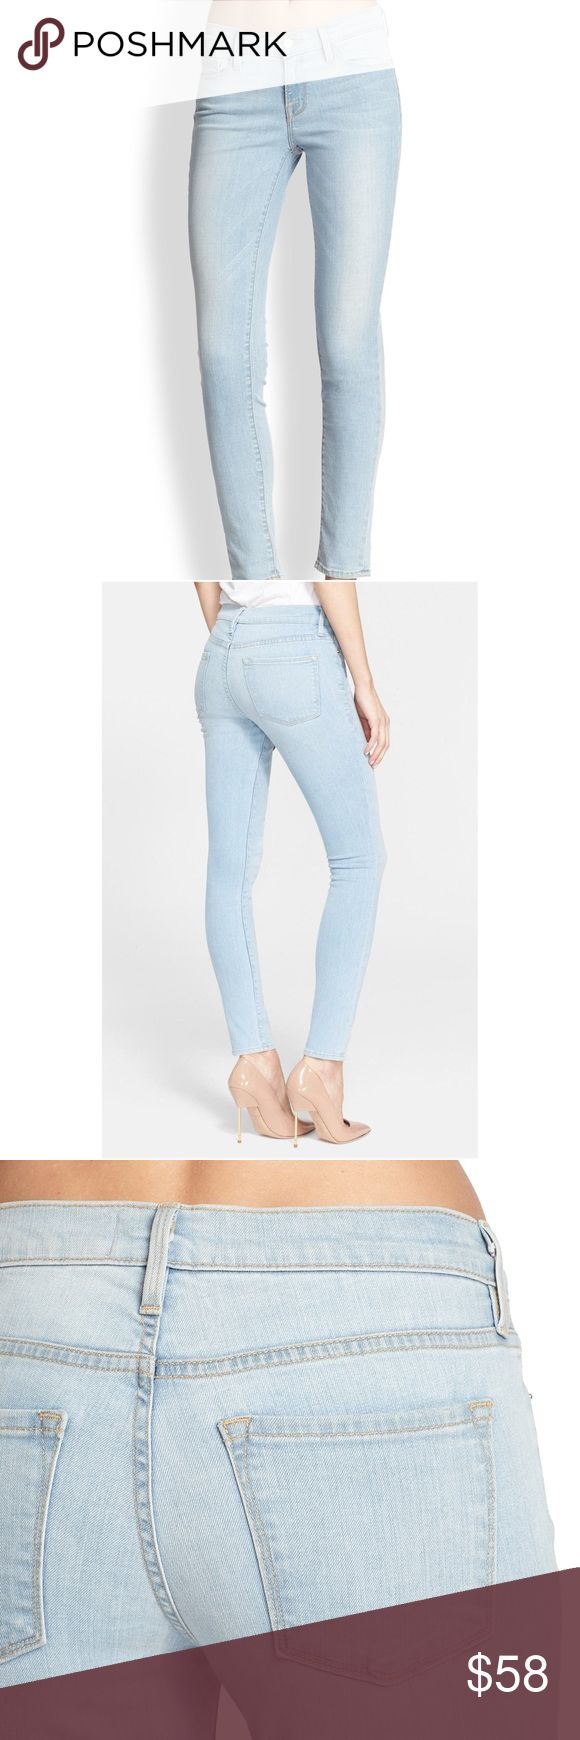 "Frame denim jeans La Skinny de Jeanne London-inspired style combined with the quality of the L.A. denim industry informs a chic pair of go-to jeans with a classic skinny cut. Supersoft and super stretchy tech denim offers a flattering fit that slims the thighs while lifting the rear. Approx 28"" inseam ; 8"" front rise; 13"" back rise (size 28). Zip fly with button closure. Five-pocket style 93% cotton, 5% polyester, 2% Lycra® spandex. Machine wash cold, tumble dry low. By Frame Denim; made in…"